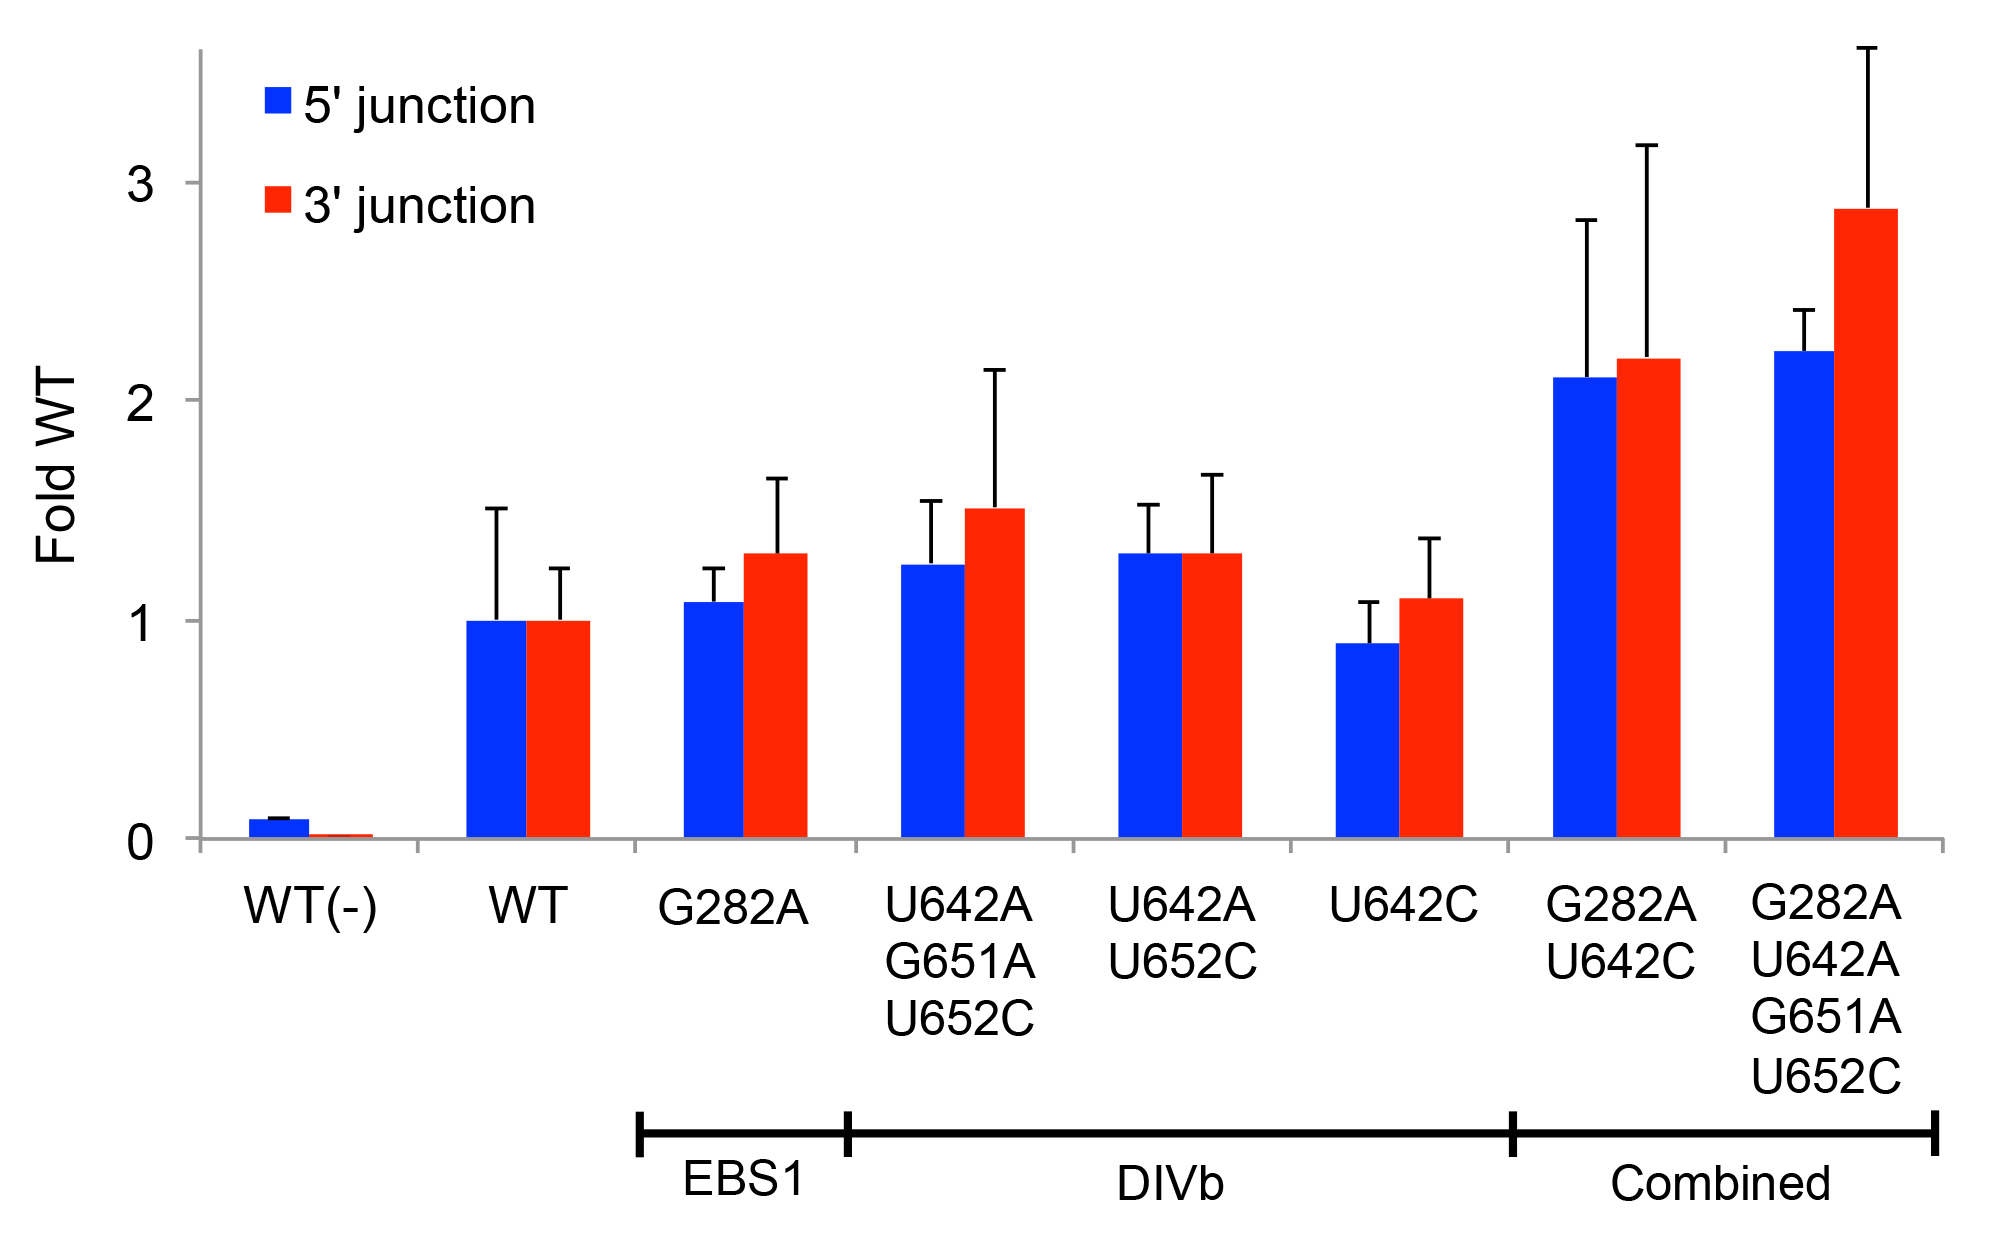 Retrohoming frequencies of Ll.LtrB variants containing positively selected mutations identified by PacBio sequencing.